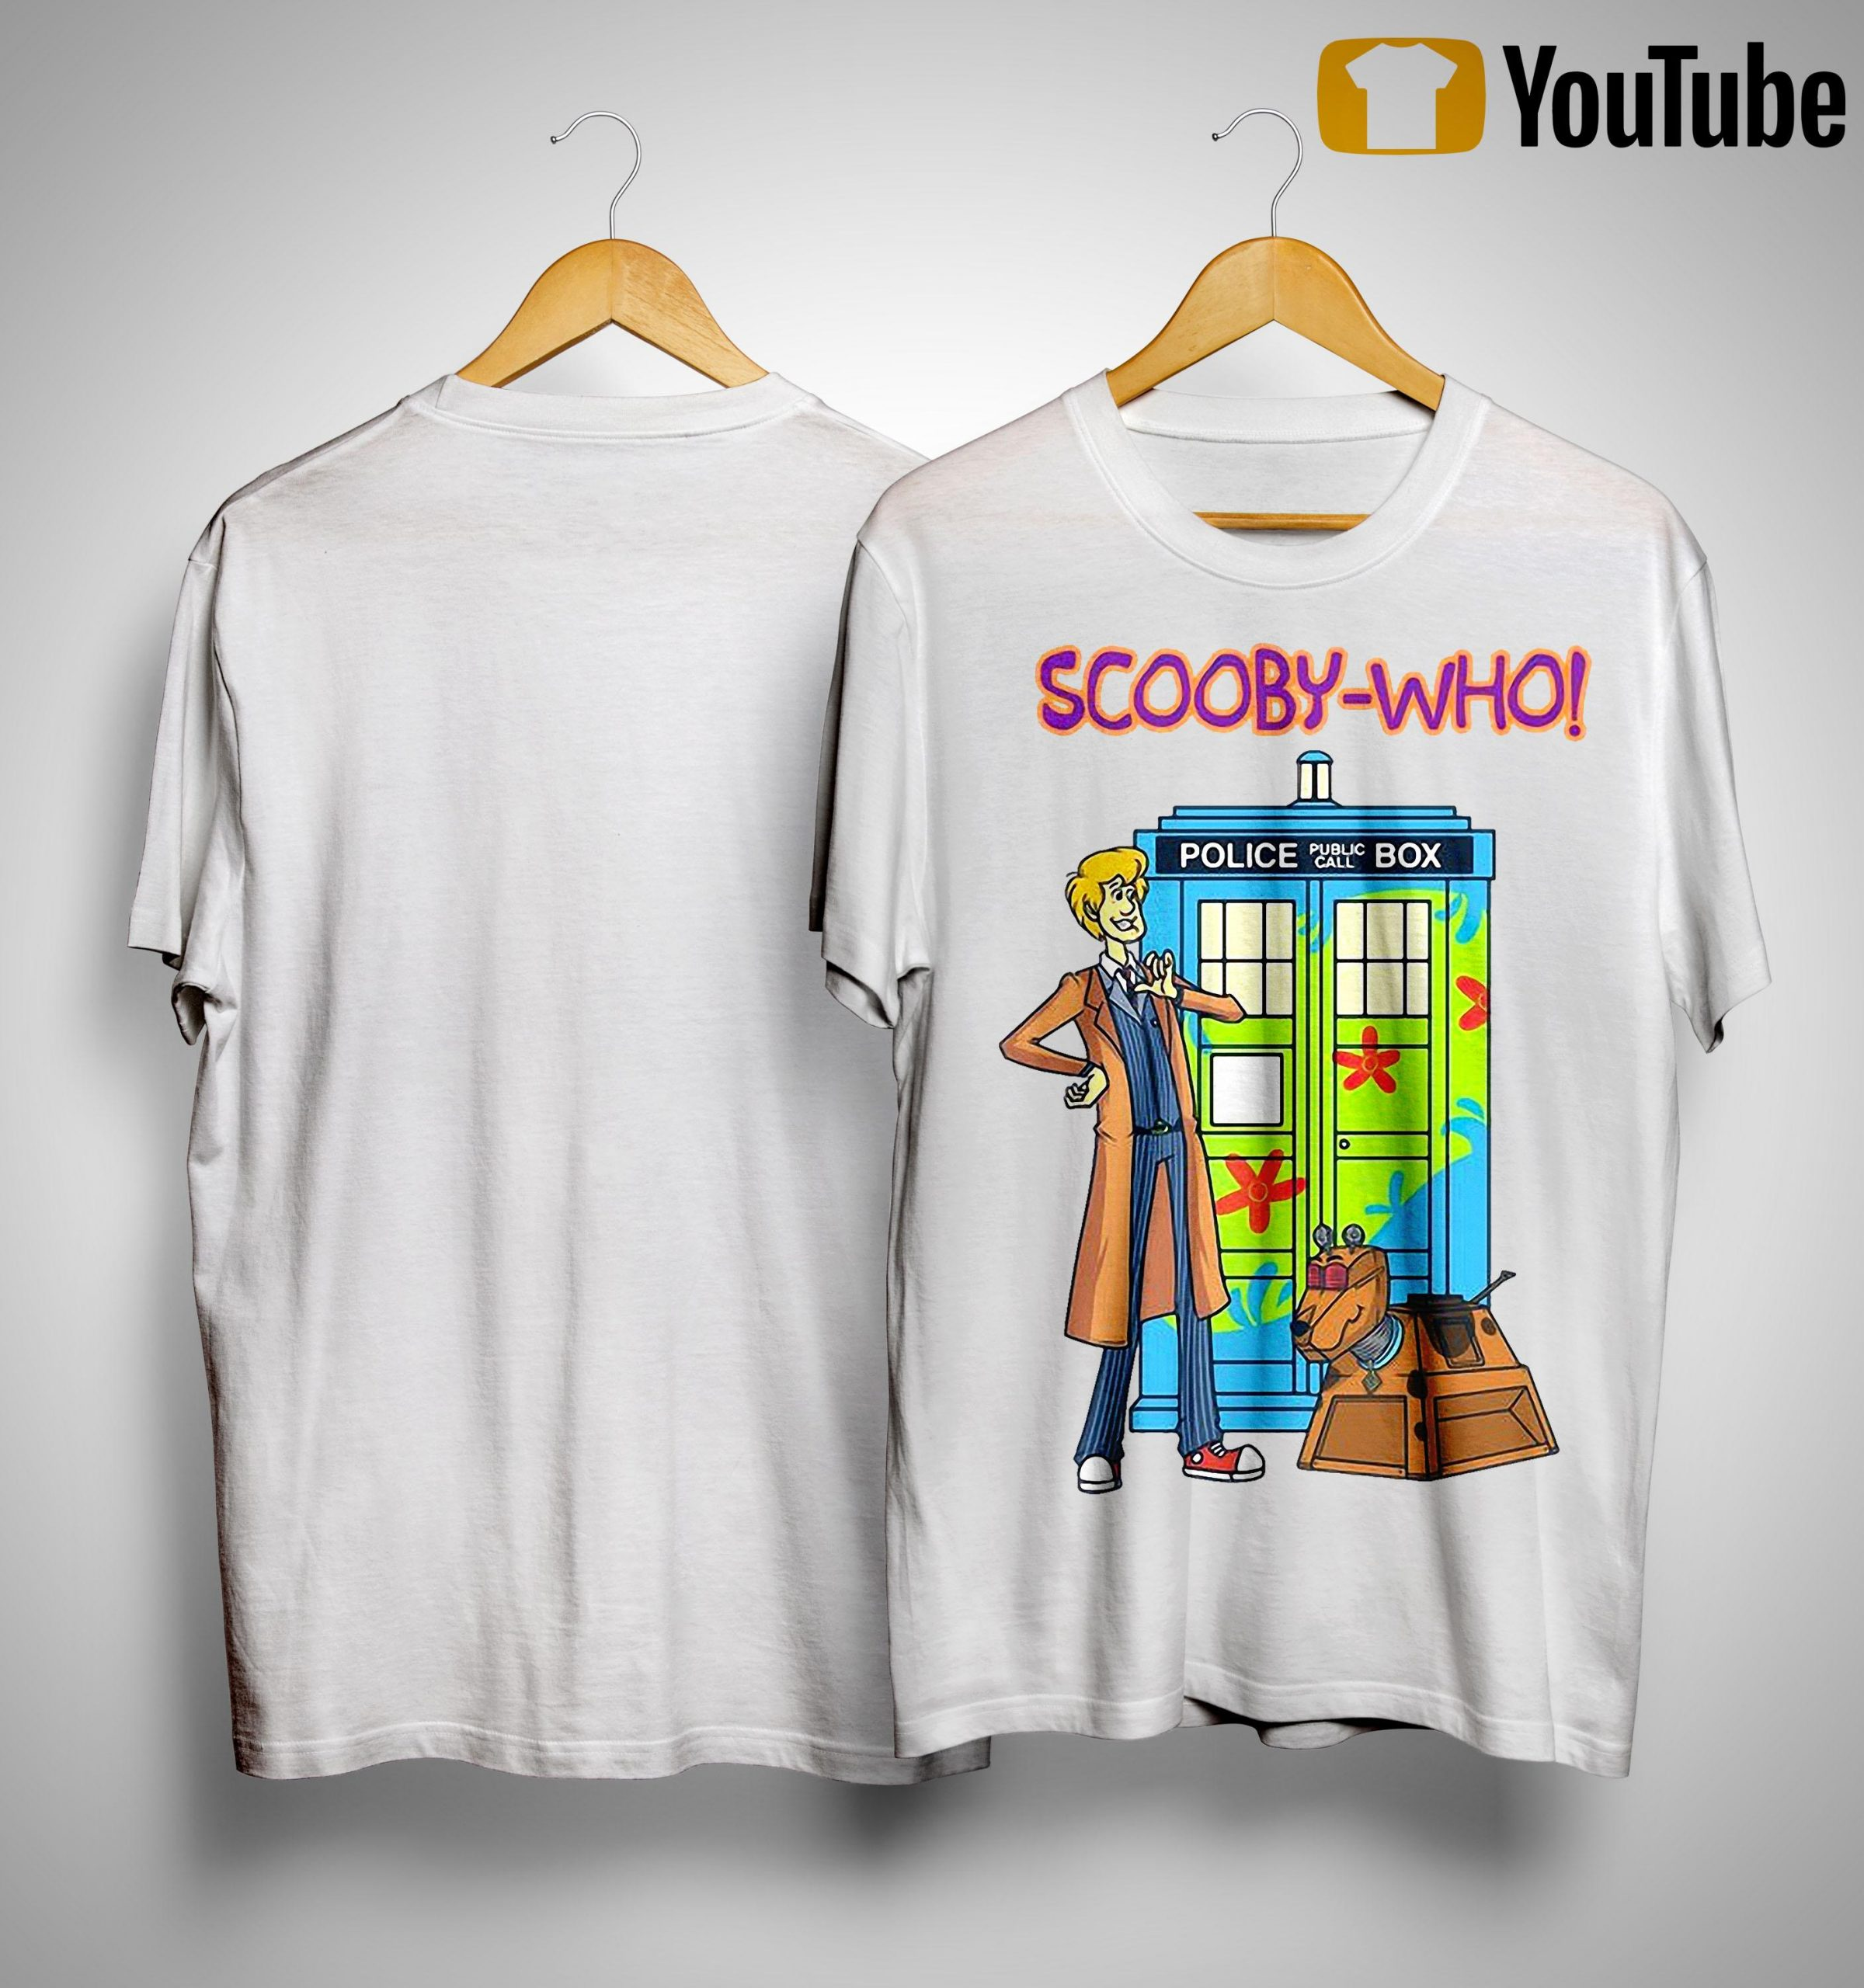 Scooby-who Shirt